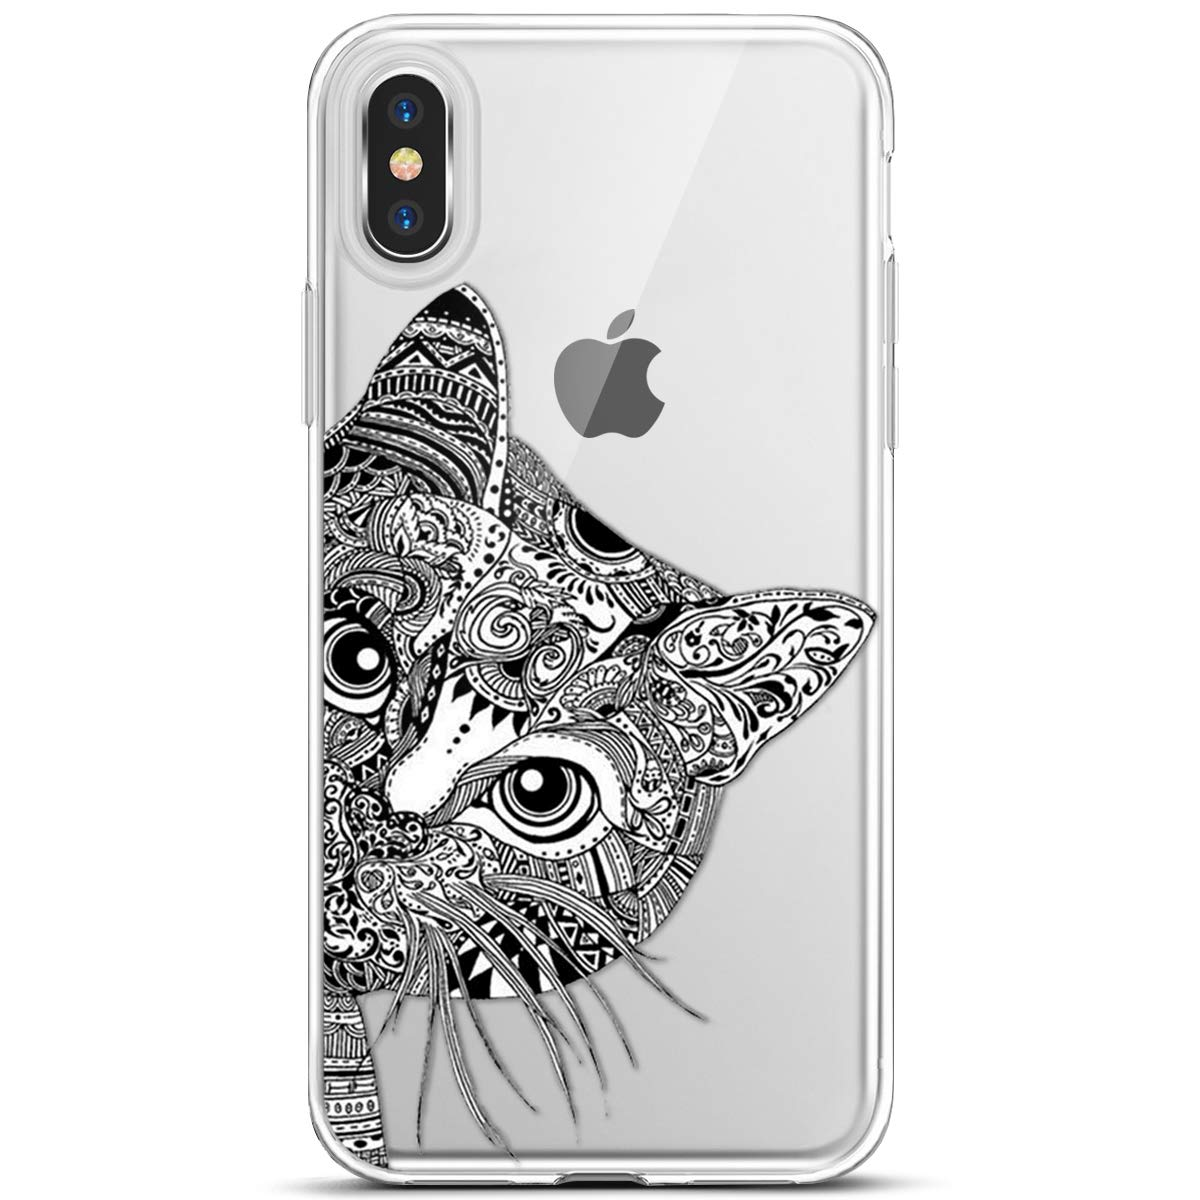 Surakey iPhone XR Case, Ultra Slim Thin Soft Clear Transparent TPU Silicone Gel Protector Case Cover Bumper Shell Cartoon Animal Pattern for iPhone XR, Elephant SUR006011